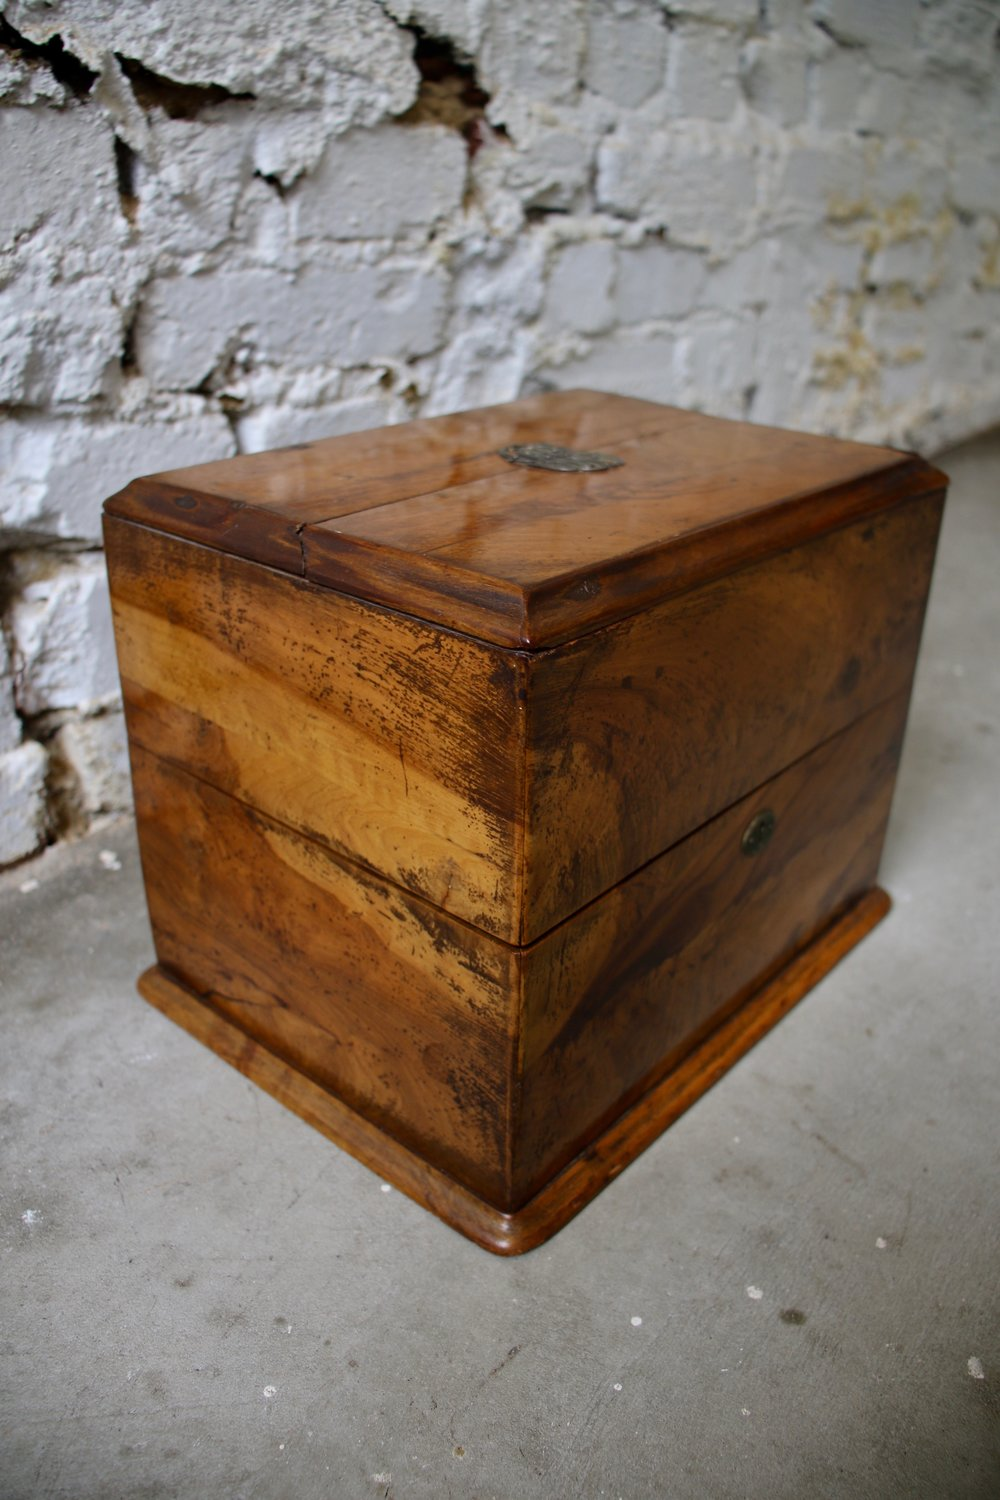 "Burl Wood Box with Monogram Detail and Key    10.75"" L x 8"" D x 8.5"" H   $1650    To order please call us at 202-234-5926 or email at boutique@darrylcarter.com. Please note pricing excludes taxes and shipping."